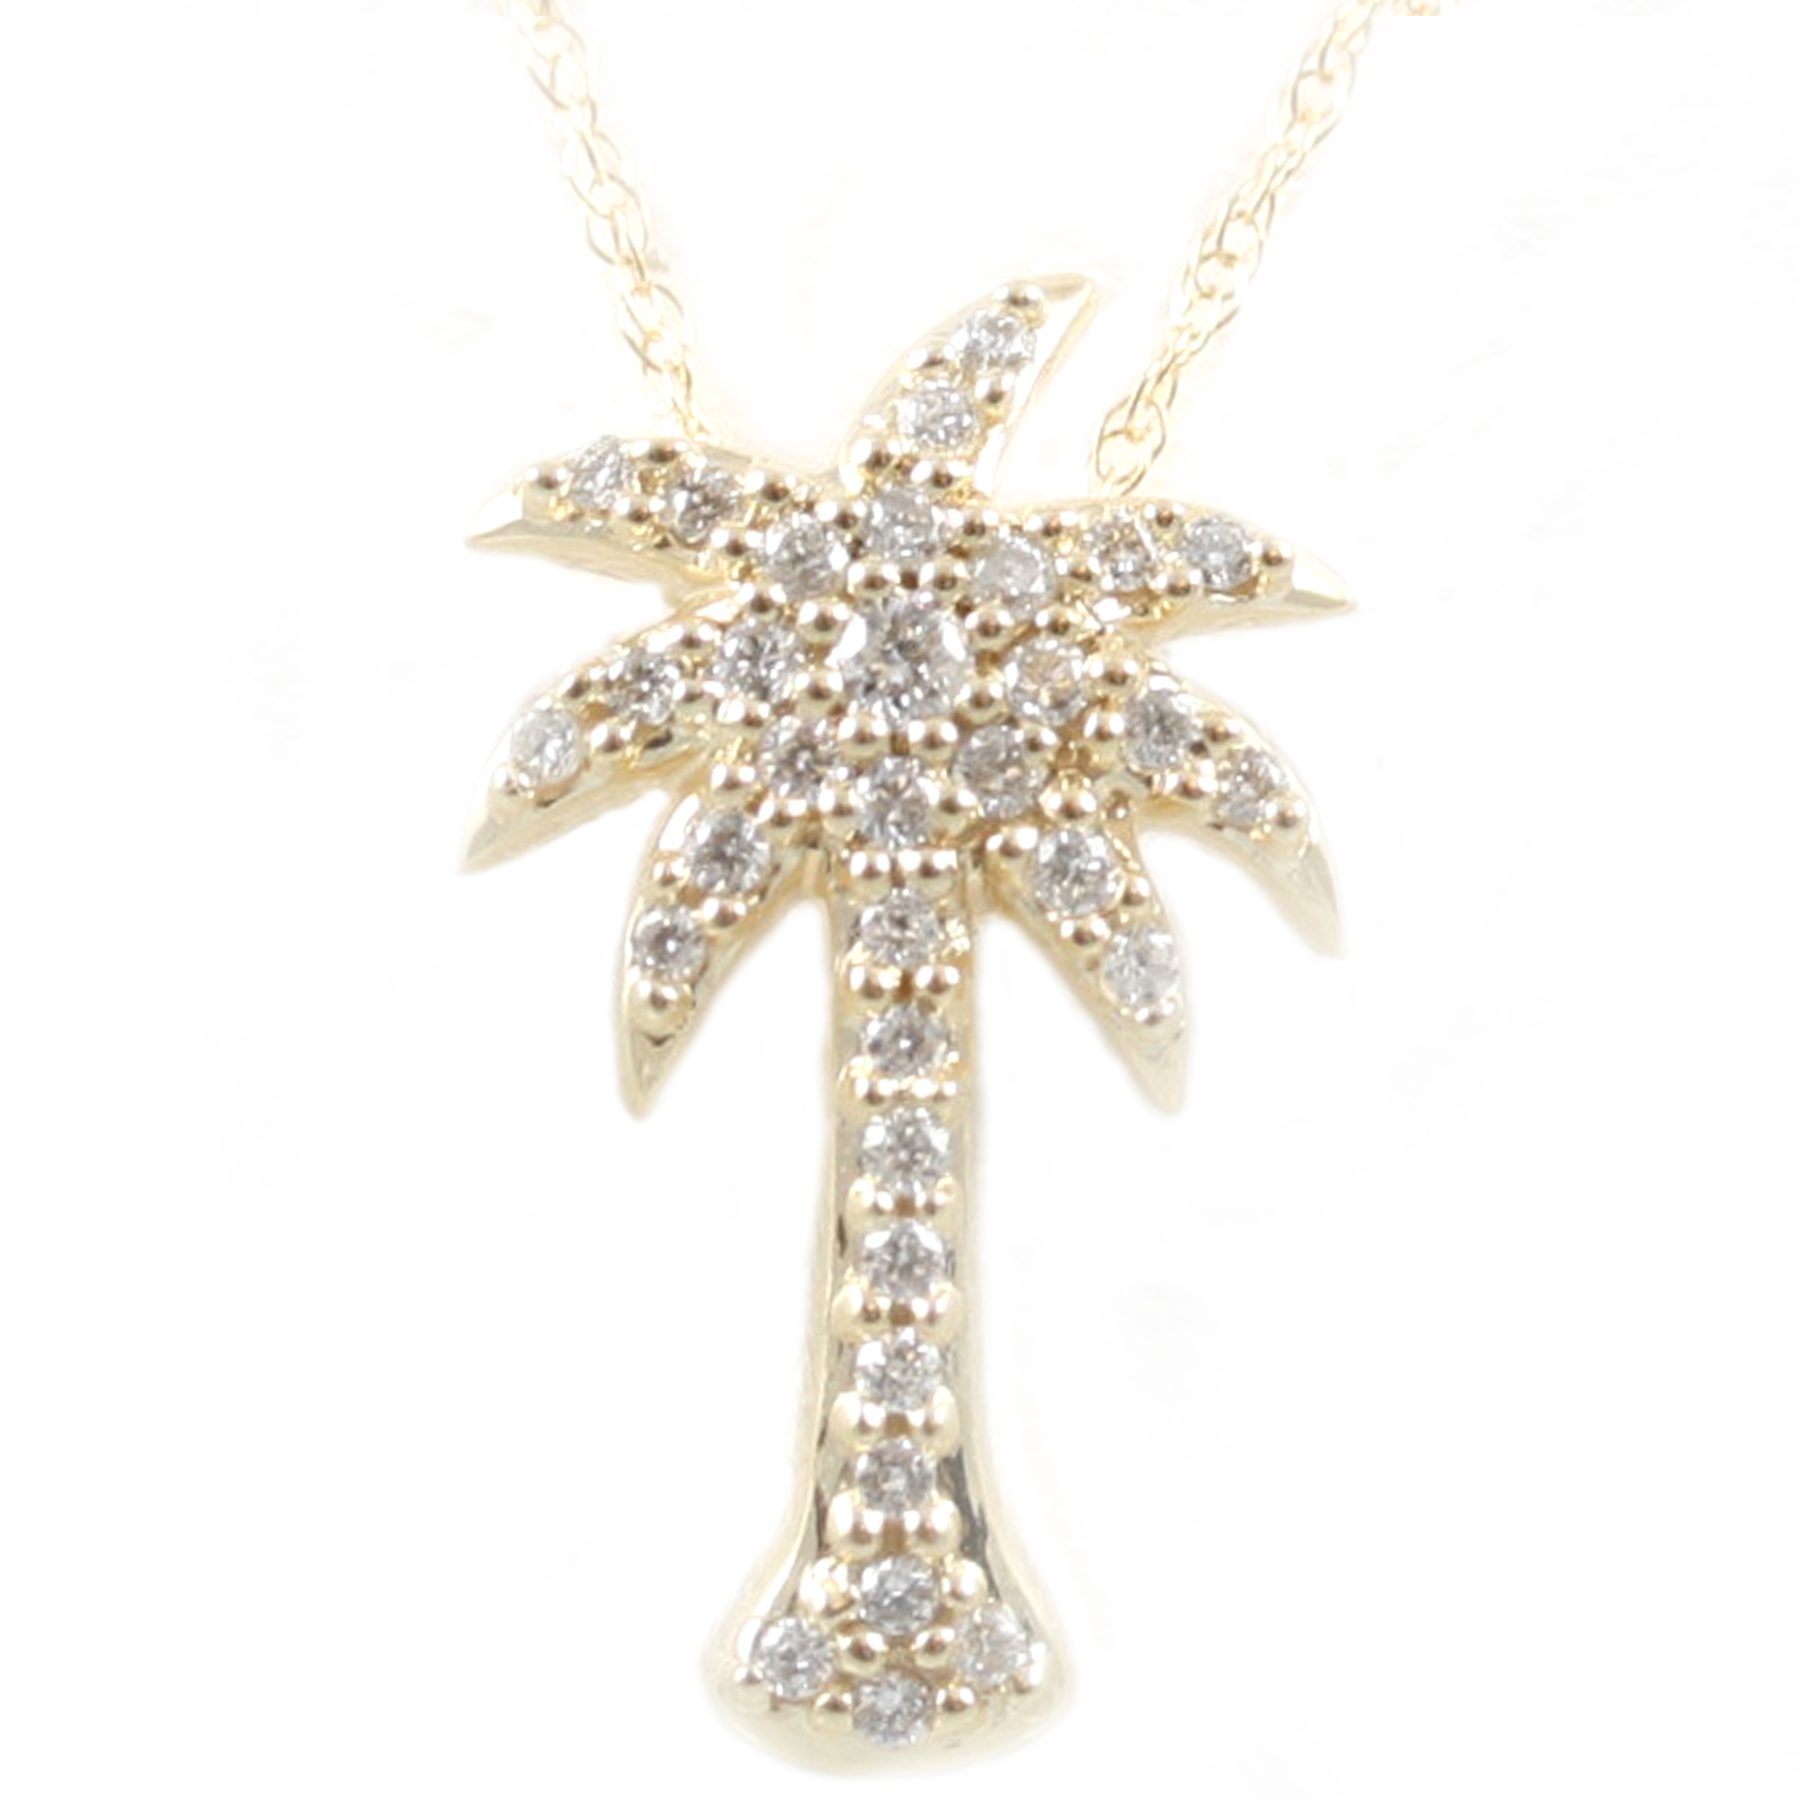 Shefi Diamonds 14 Karat Yellow Gold Diamond Palm Tree Pendant Necklace